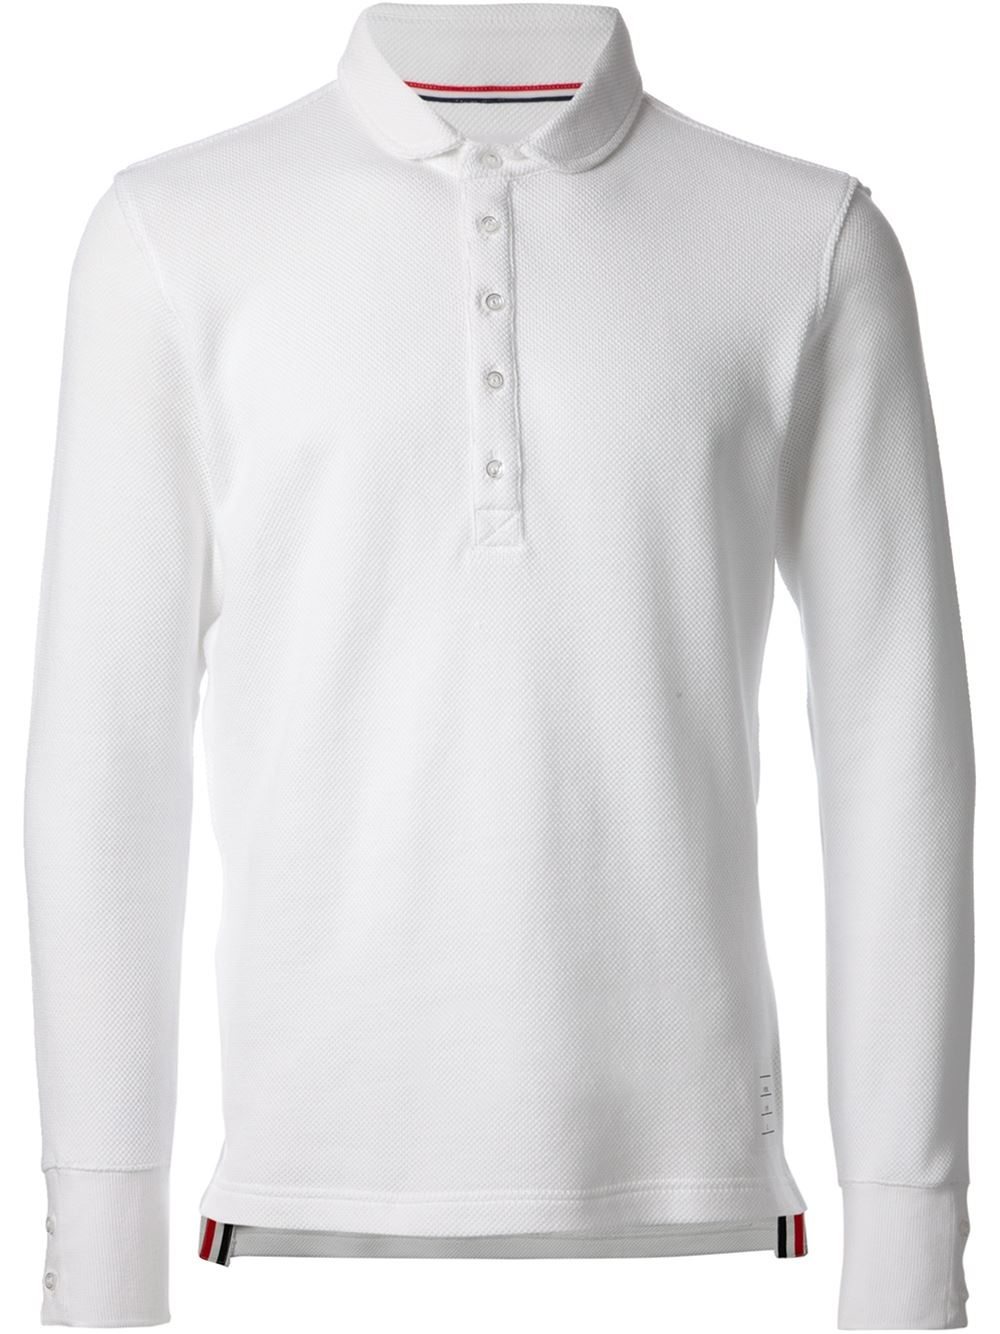 Lyst thom browne long sleeve polo shirt in white for men for Thom browne white shirt